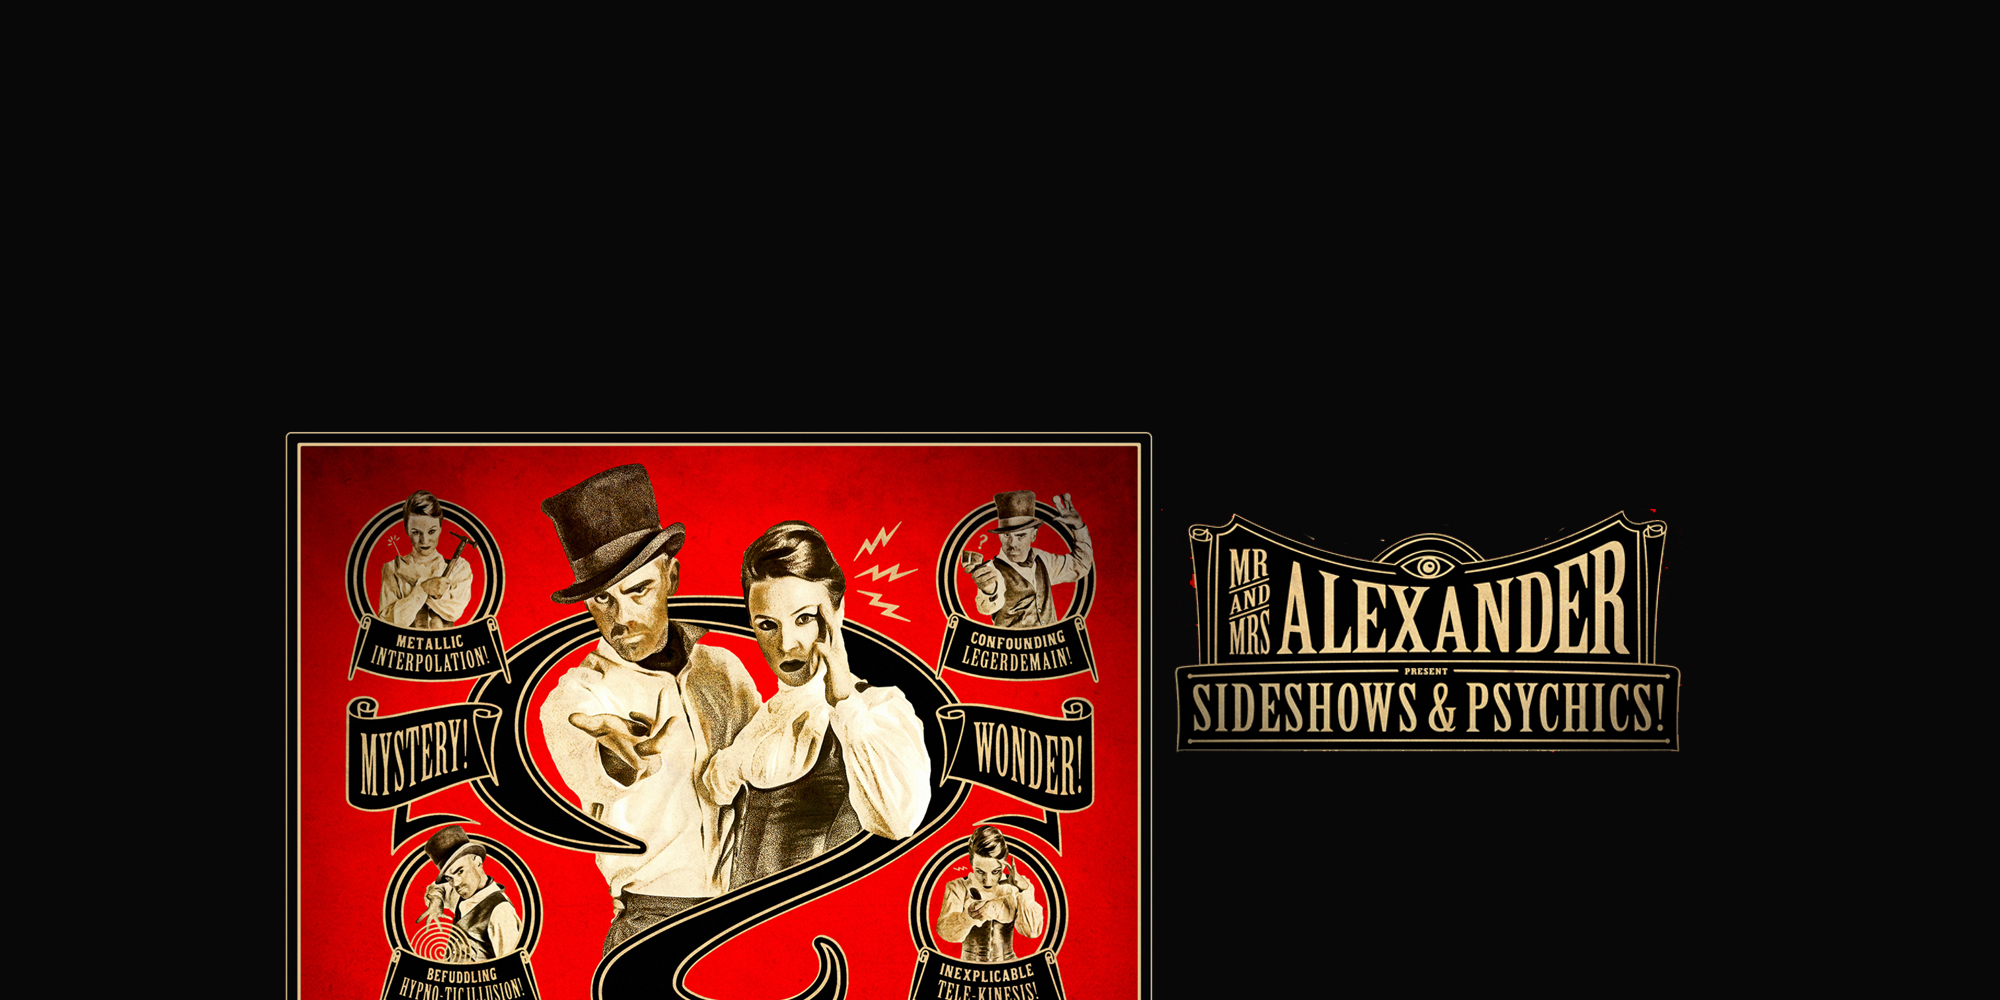 Mr and Mrs alexander website header